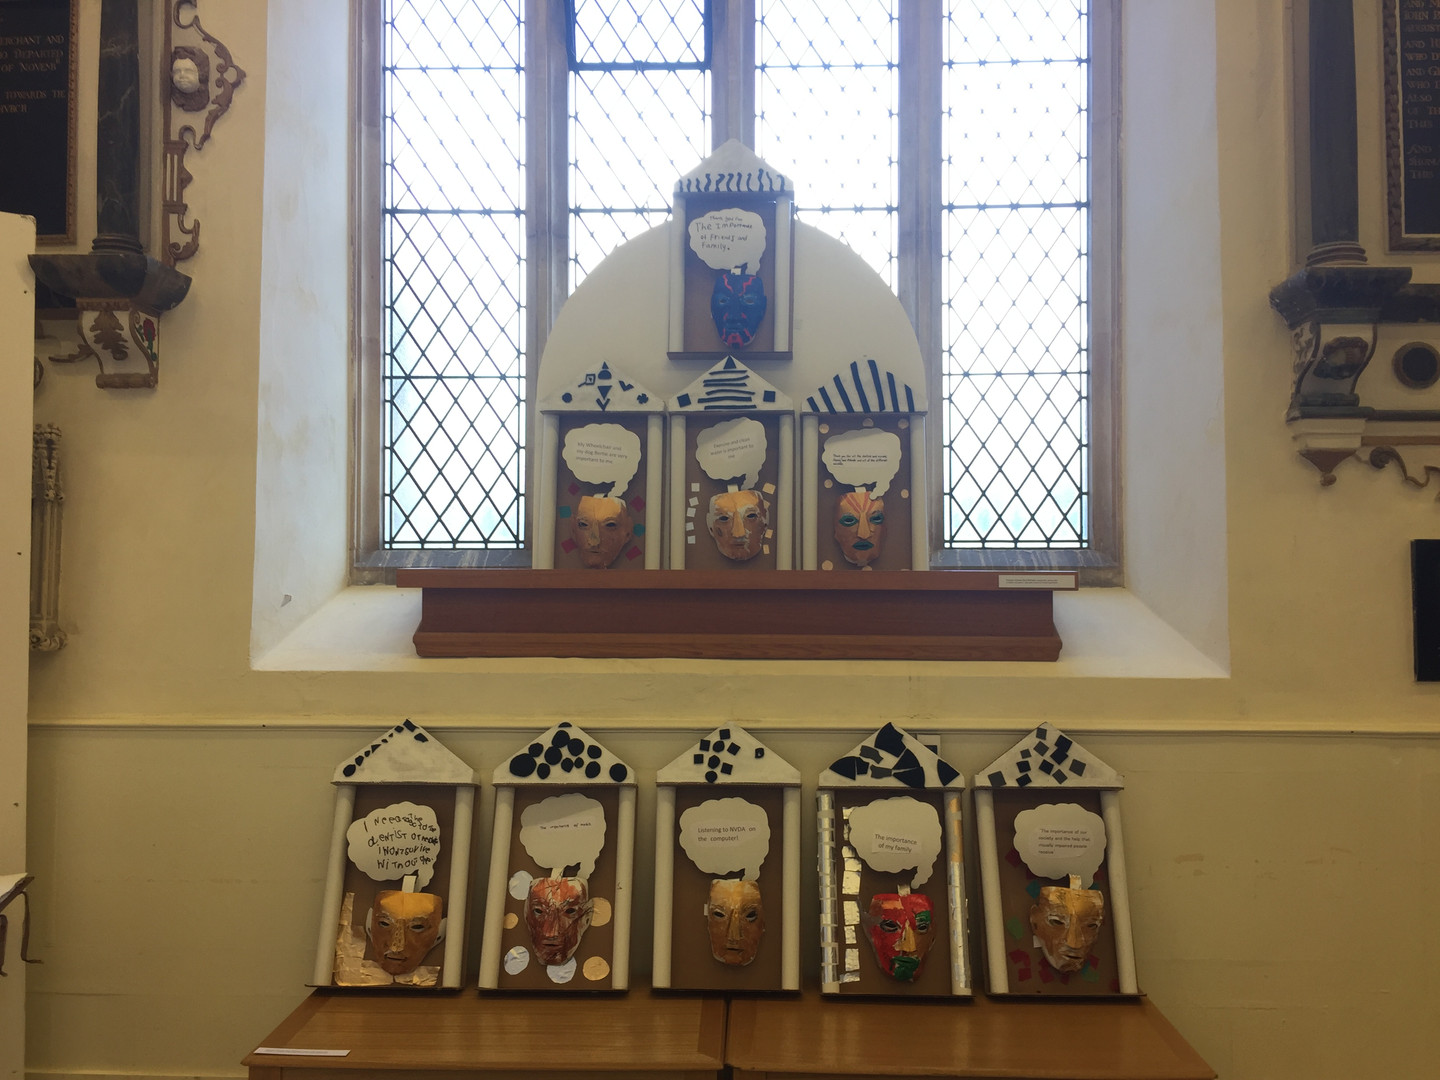 House Gods created with James Lake at the 'Re-Boot' Exhibition at St Stephens Church